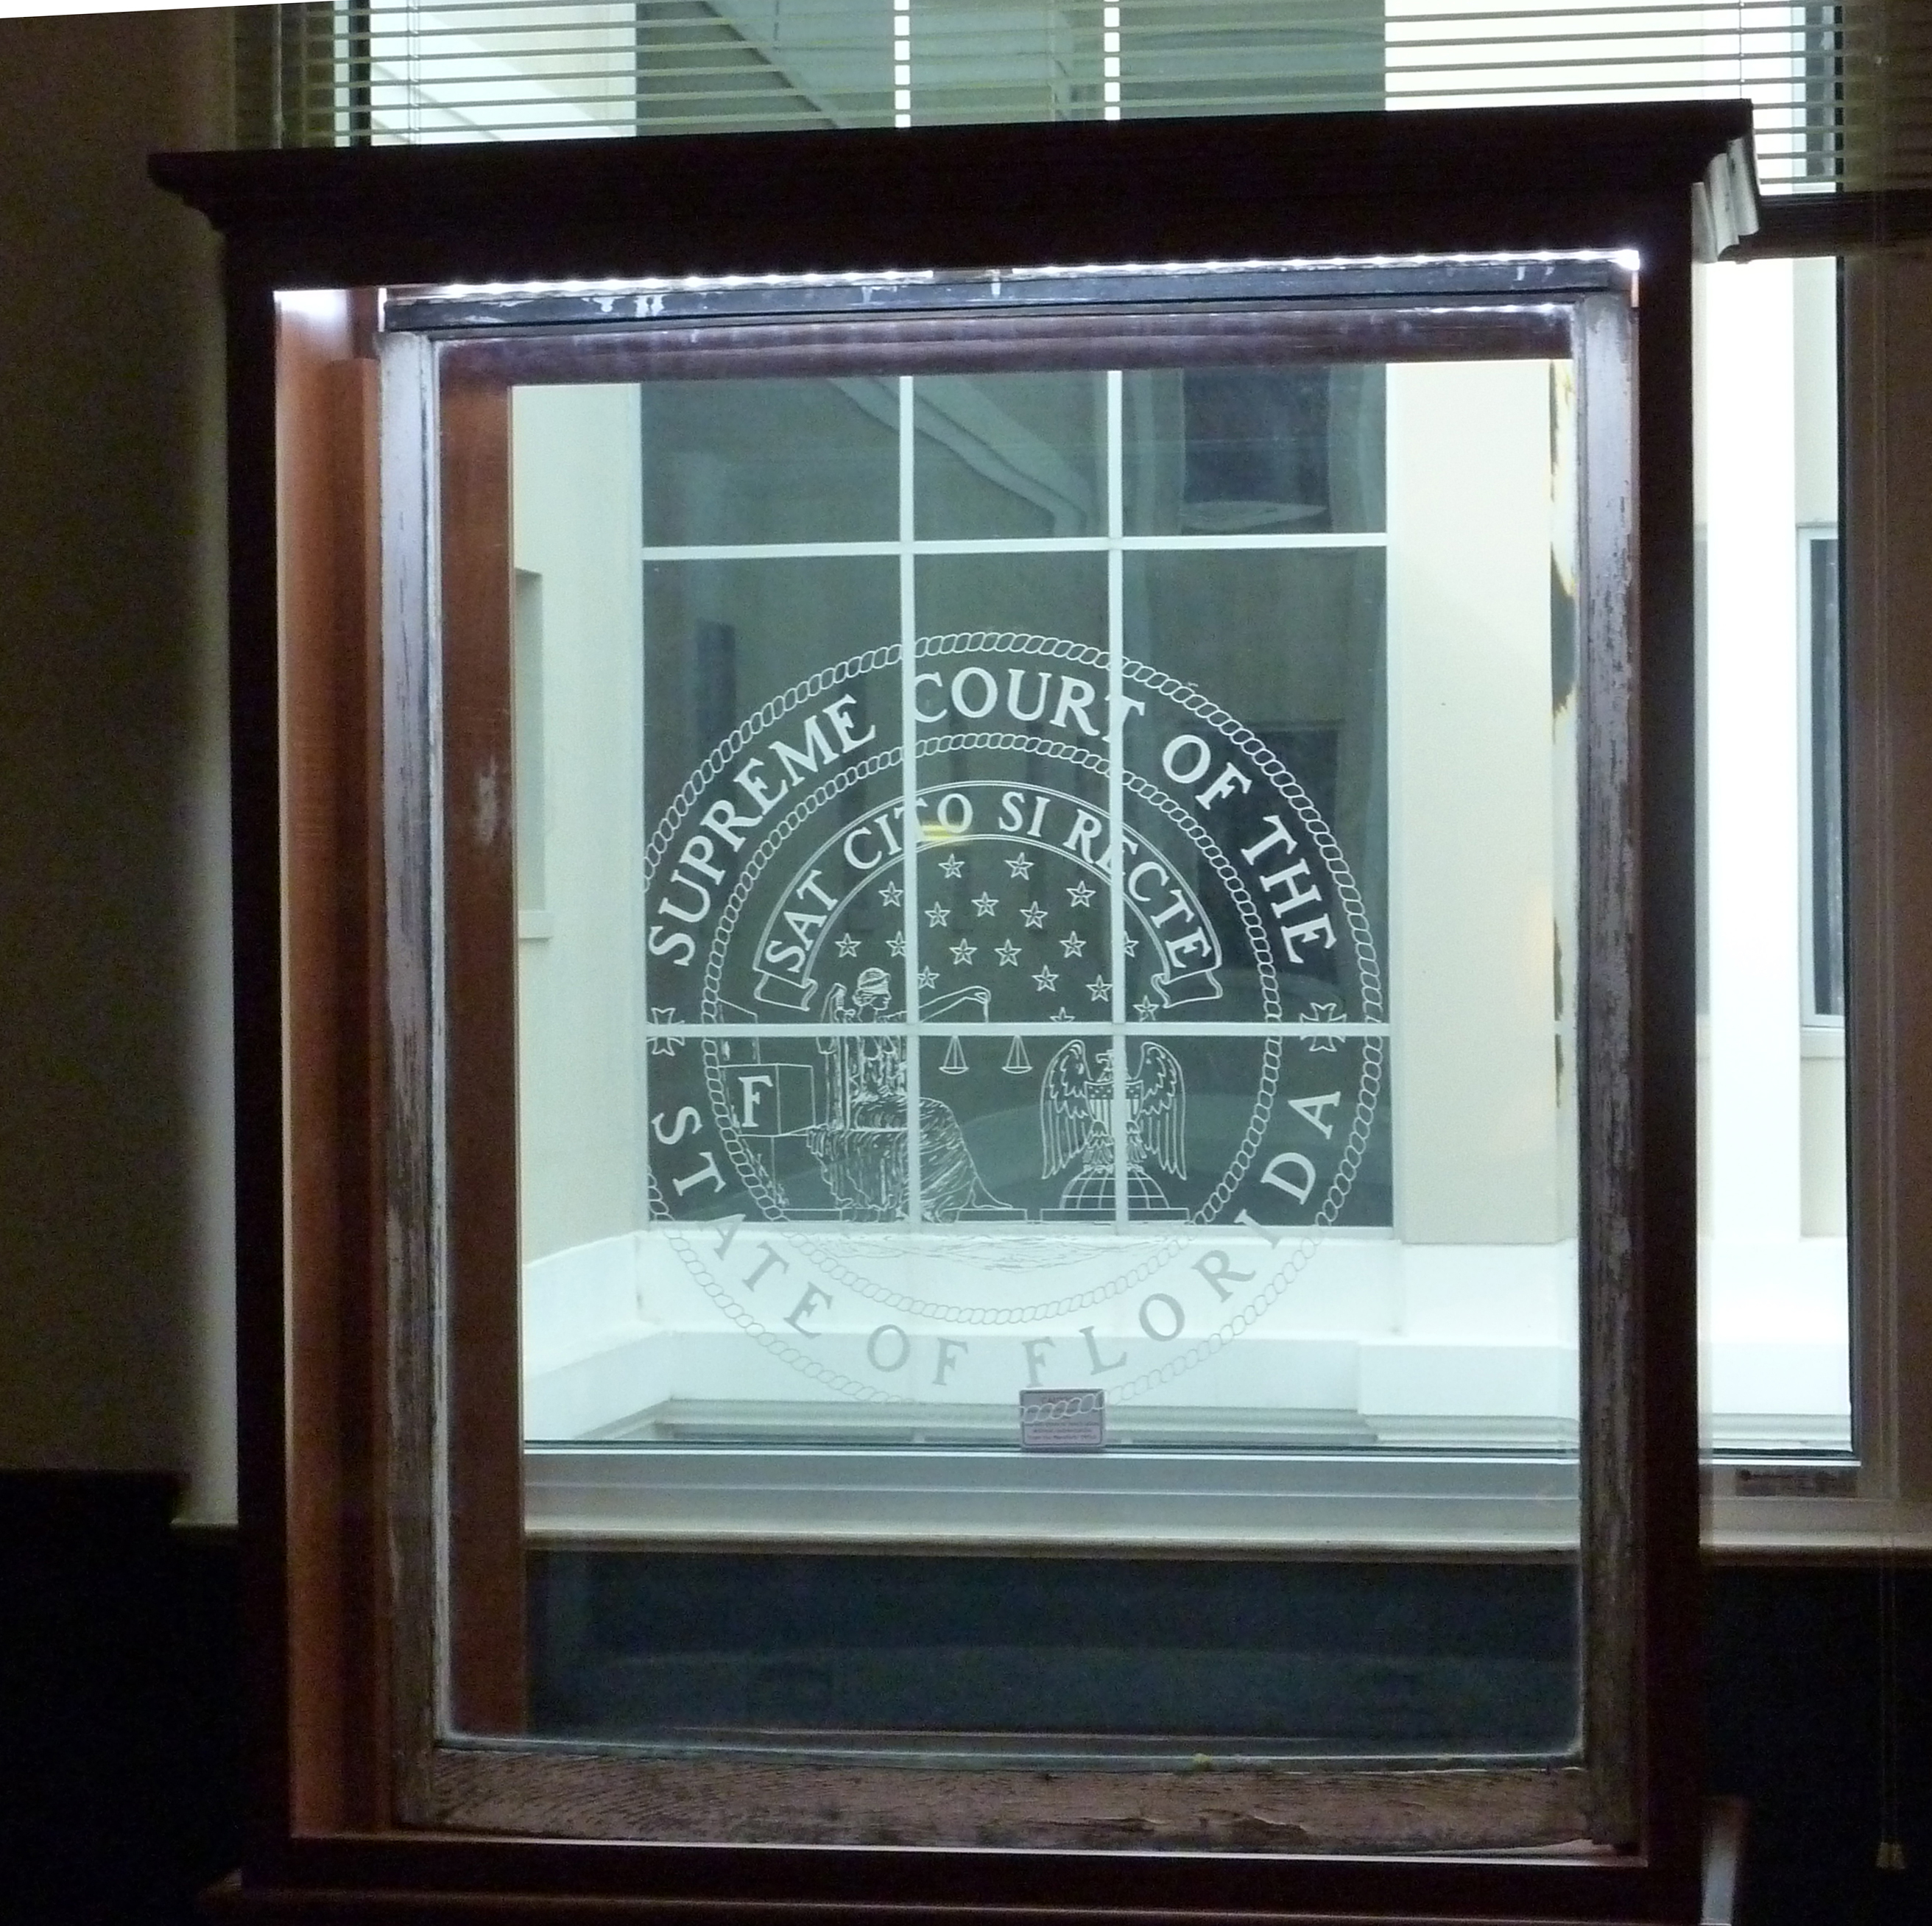 Until 1978, this handsome, curved-glass window etched with the supreme court seal adorned Florida's first Supreme Court Building; the window is now permanently established in the Lawyer's Lounge of the current Supreme Court Building. (BC Schwartz, OSCA)